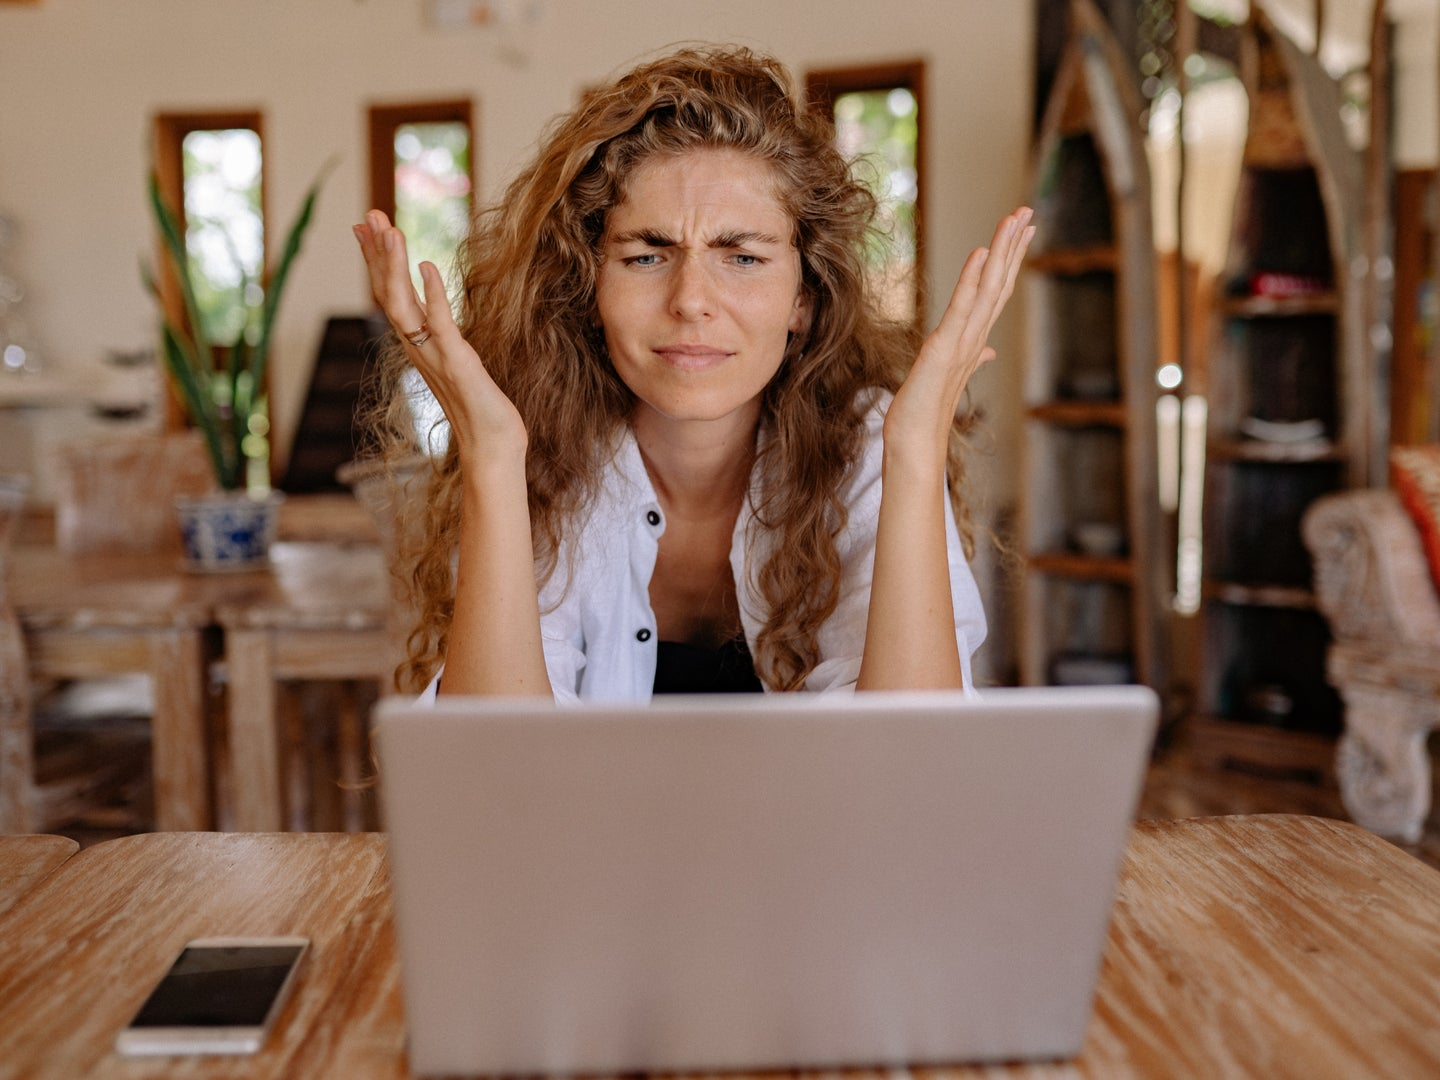 A woman with curly, dirty blonde hair sitting in front of a gray laptop with her hands in the air in an act of confusion or frustration.